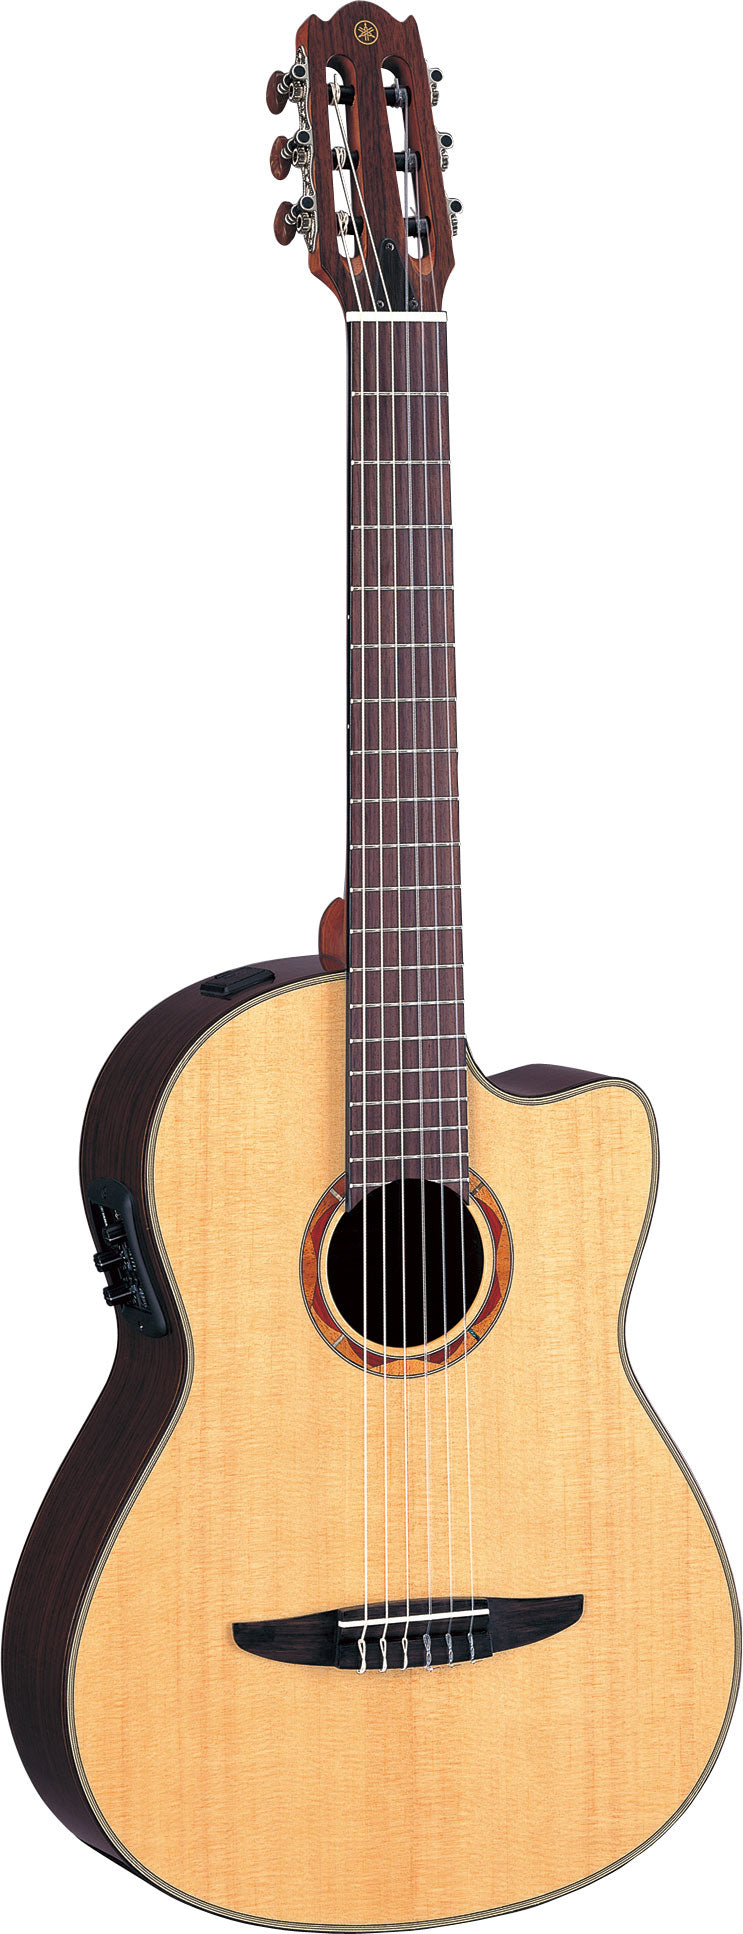 Yamaha NCX900R Acoustic-Electric Classical Guitar - Rosewood